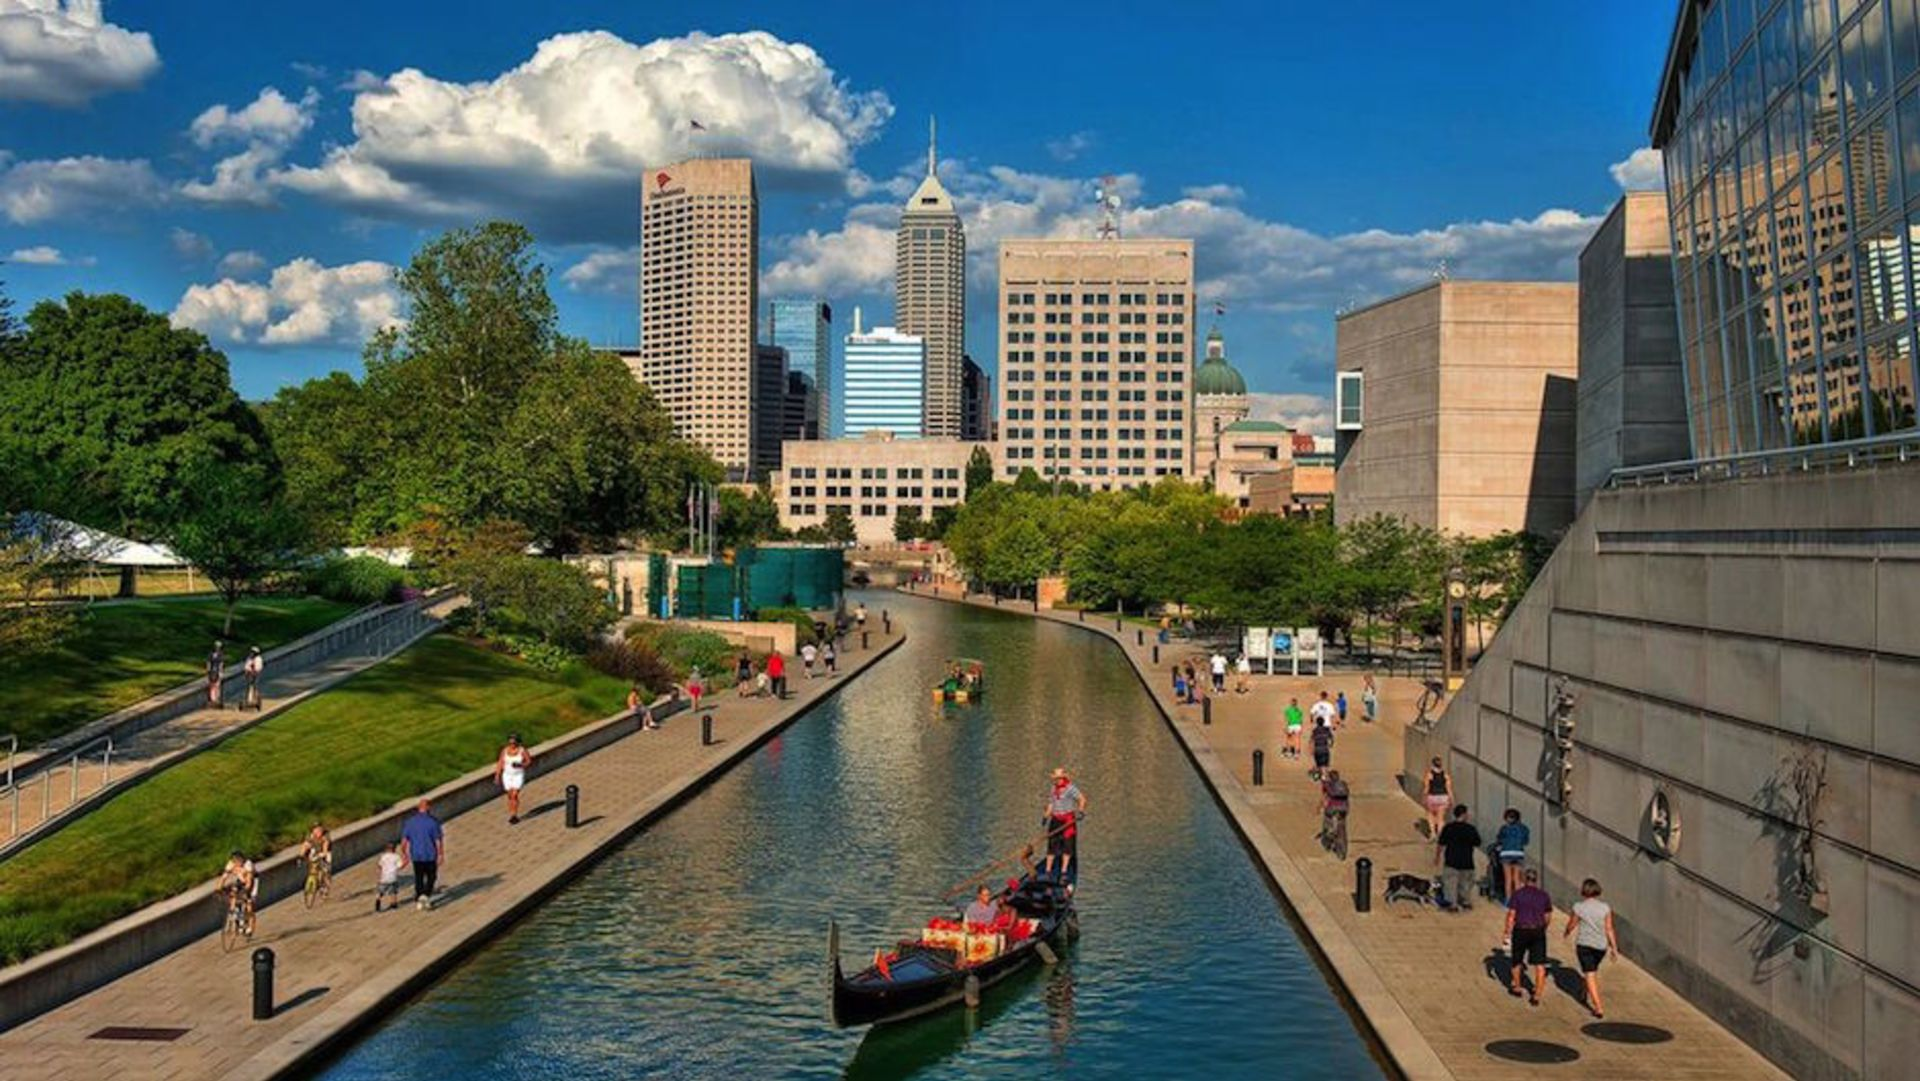 Staycation in Indy: Explore the best Indy has to offer!